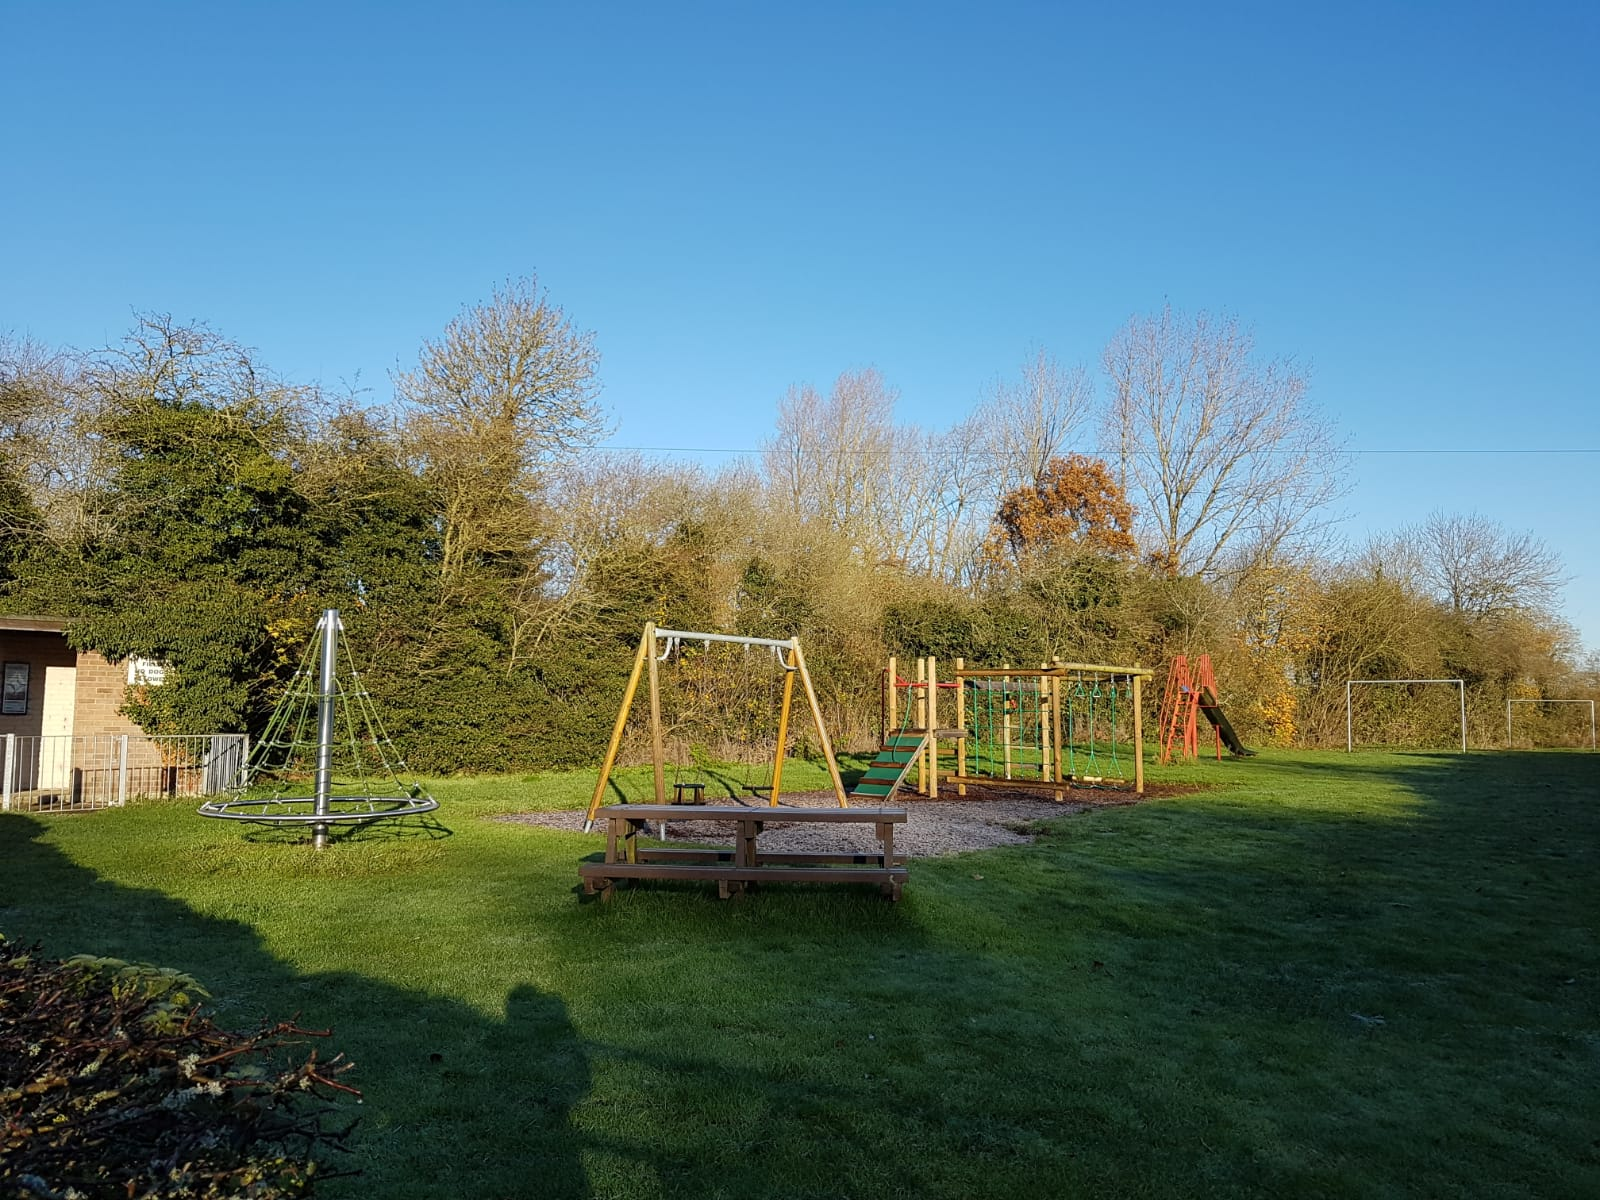 Cratfield Village Playground